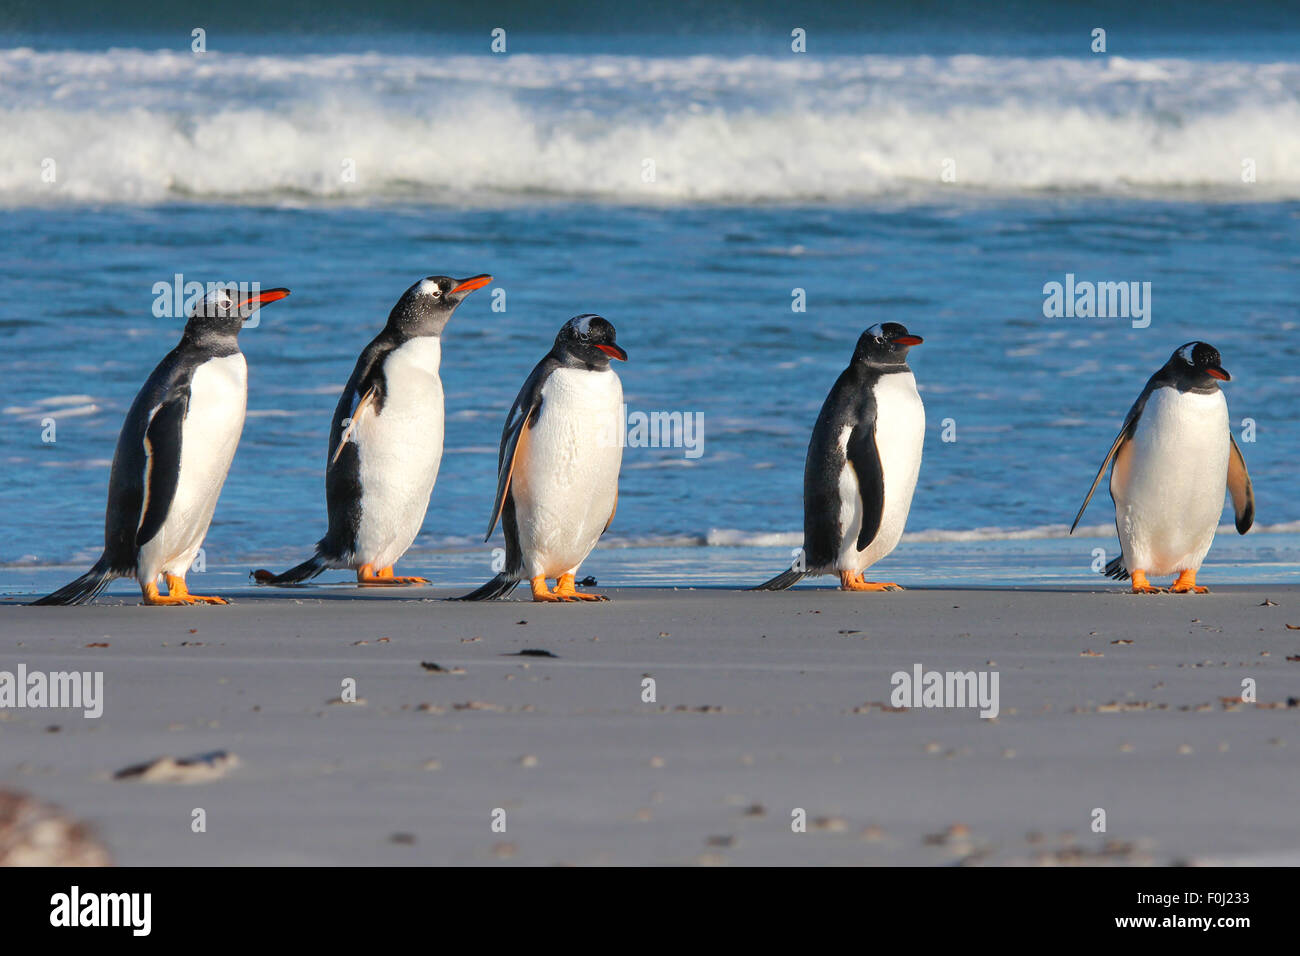 Five Gentoo Penguins lined up by the surf. Bertha's Beach, Falkland Islands. - Stock Image